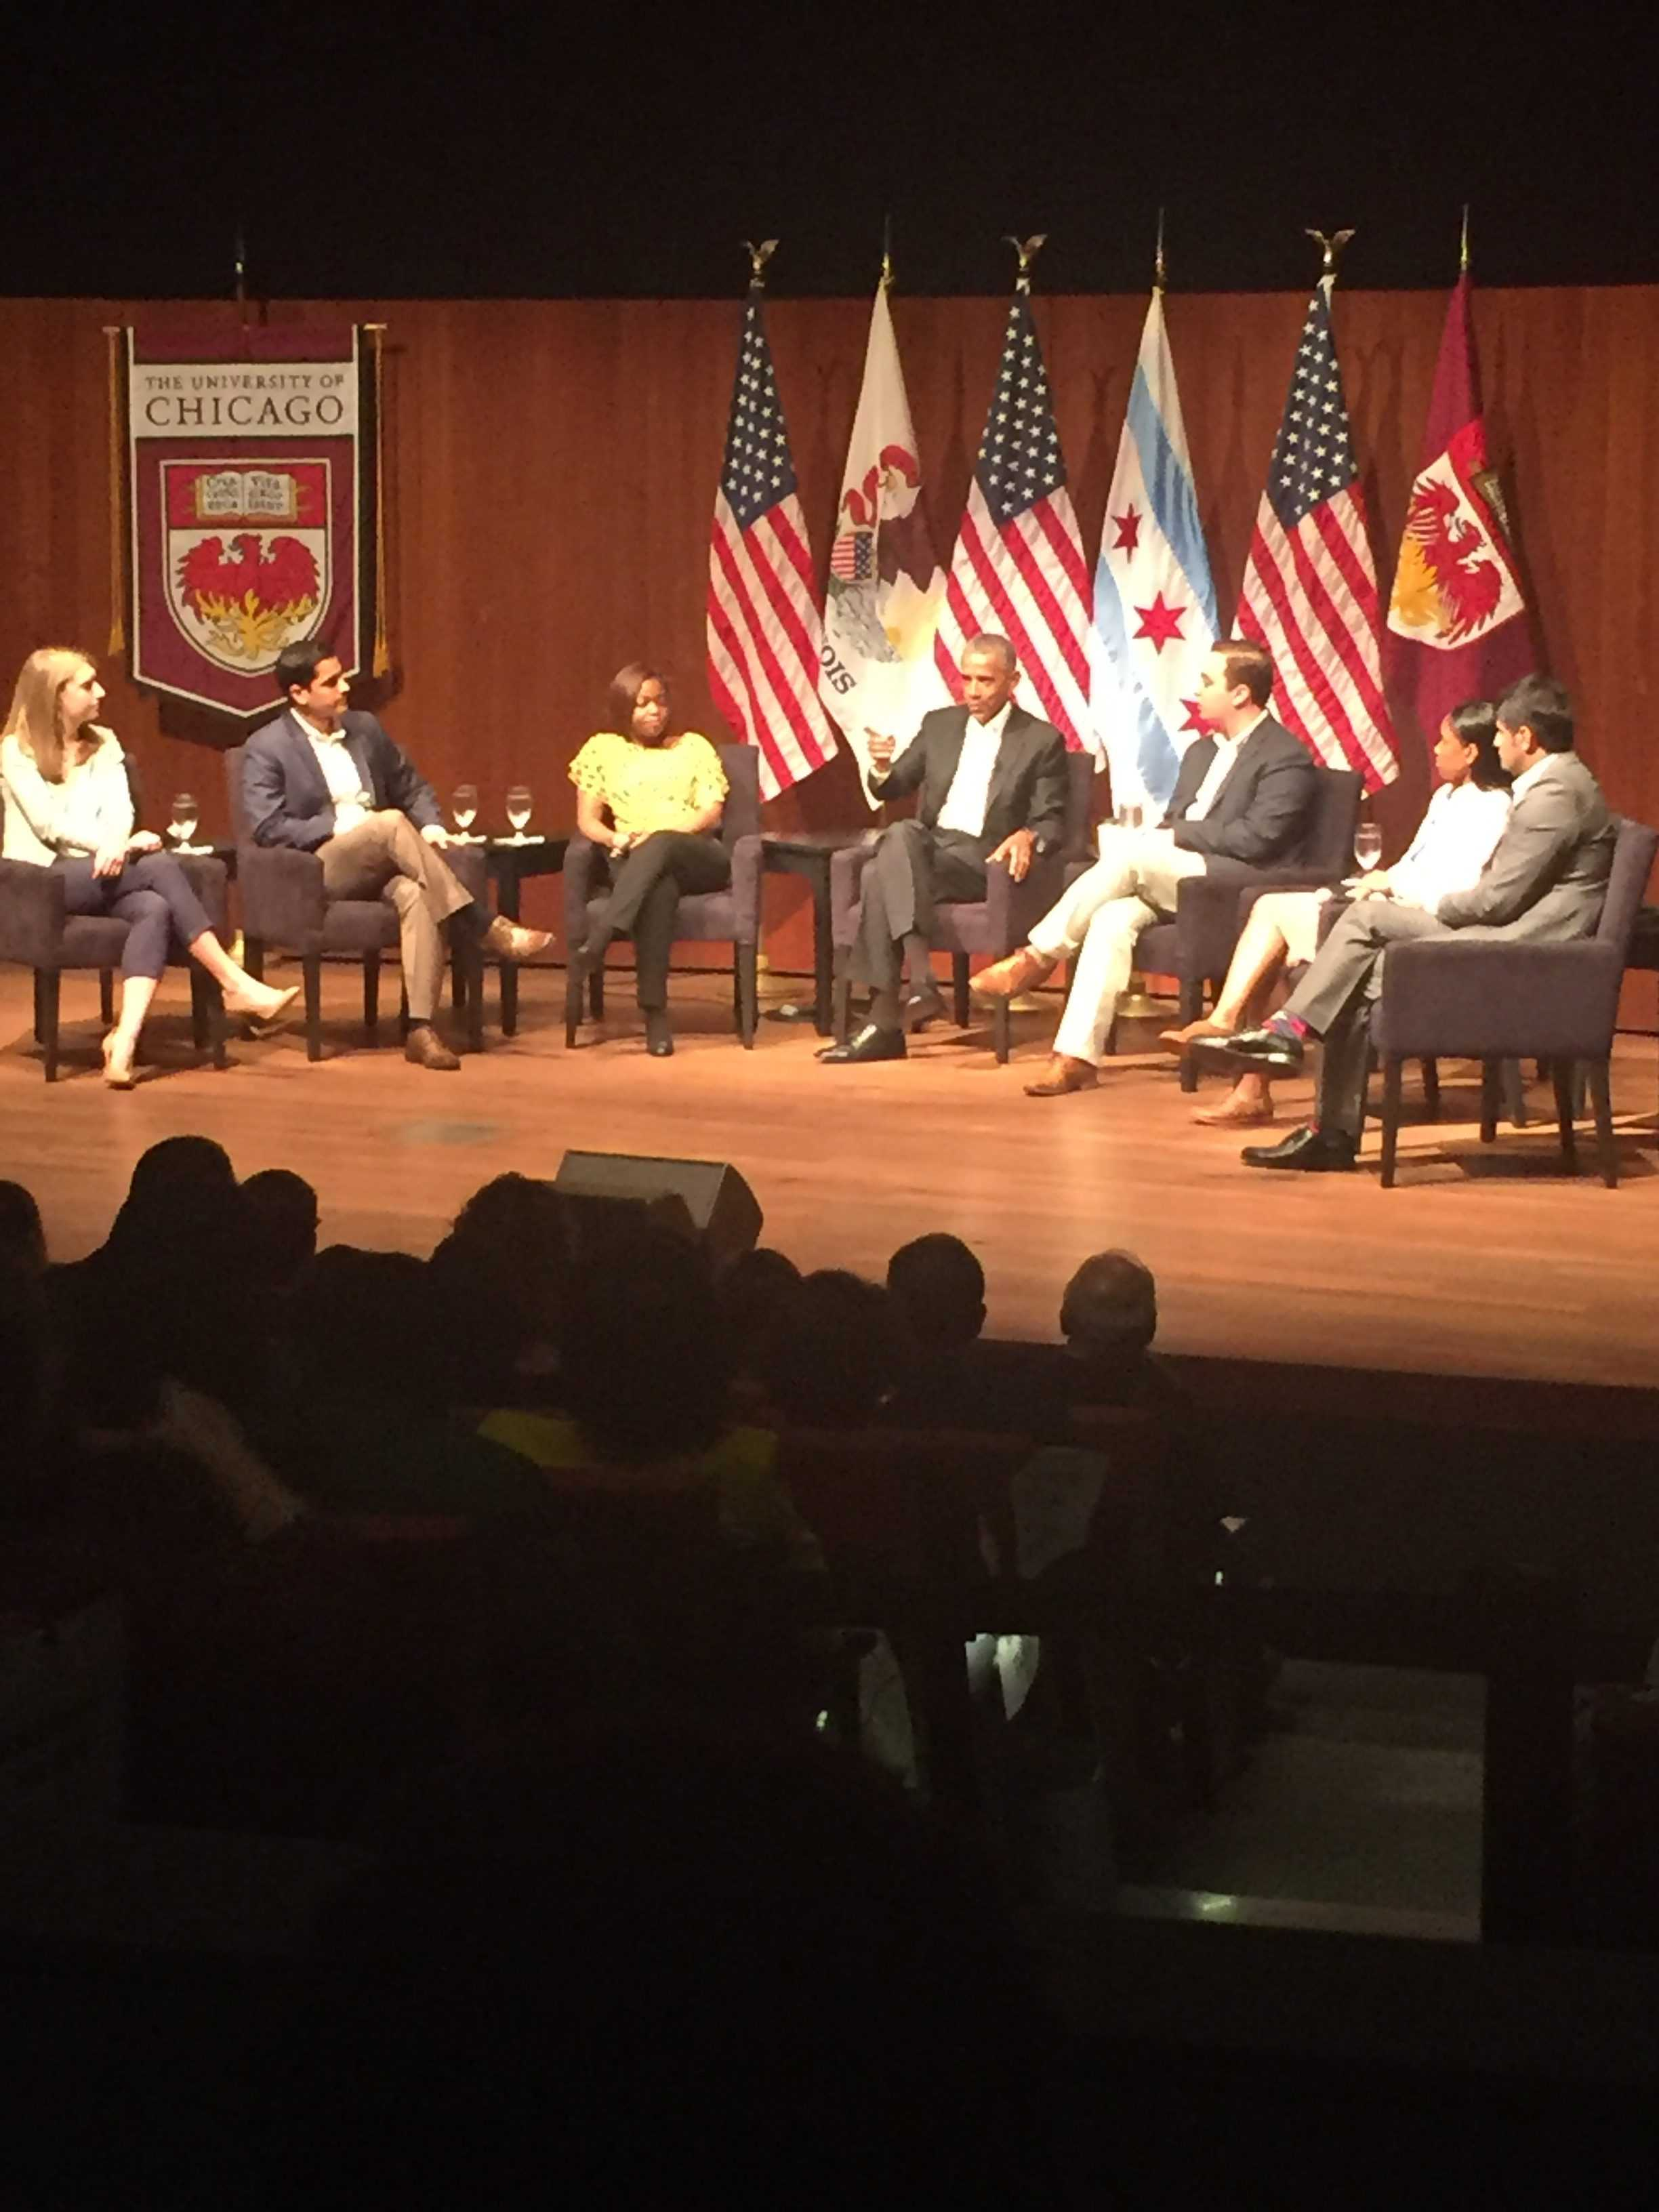 President Obama sits with six students, graduates from Chicago schools Monday for a roundtable discussion on community service and engagement. Rachel Hinton | The DePaulia